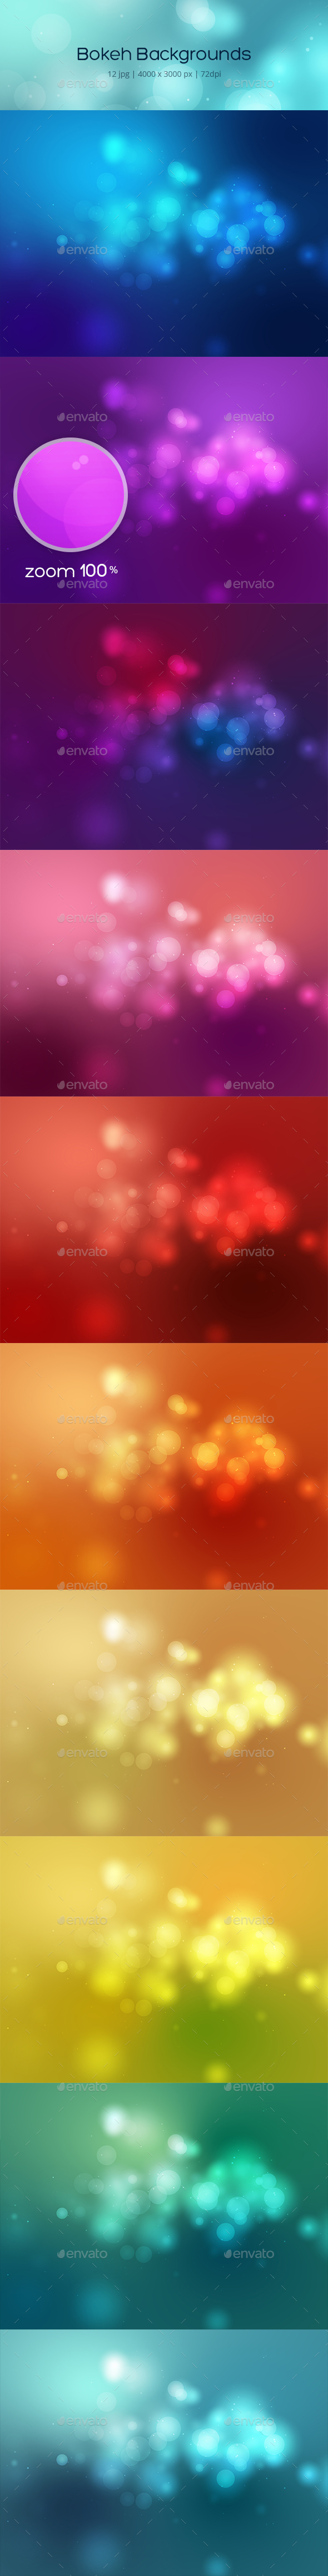 GraphicRiver Bokeh Backgrounds 20987961